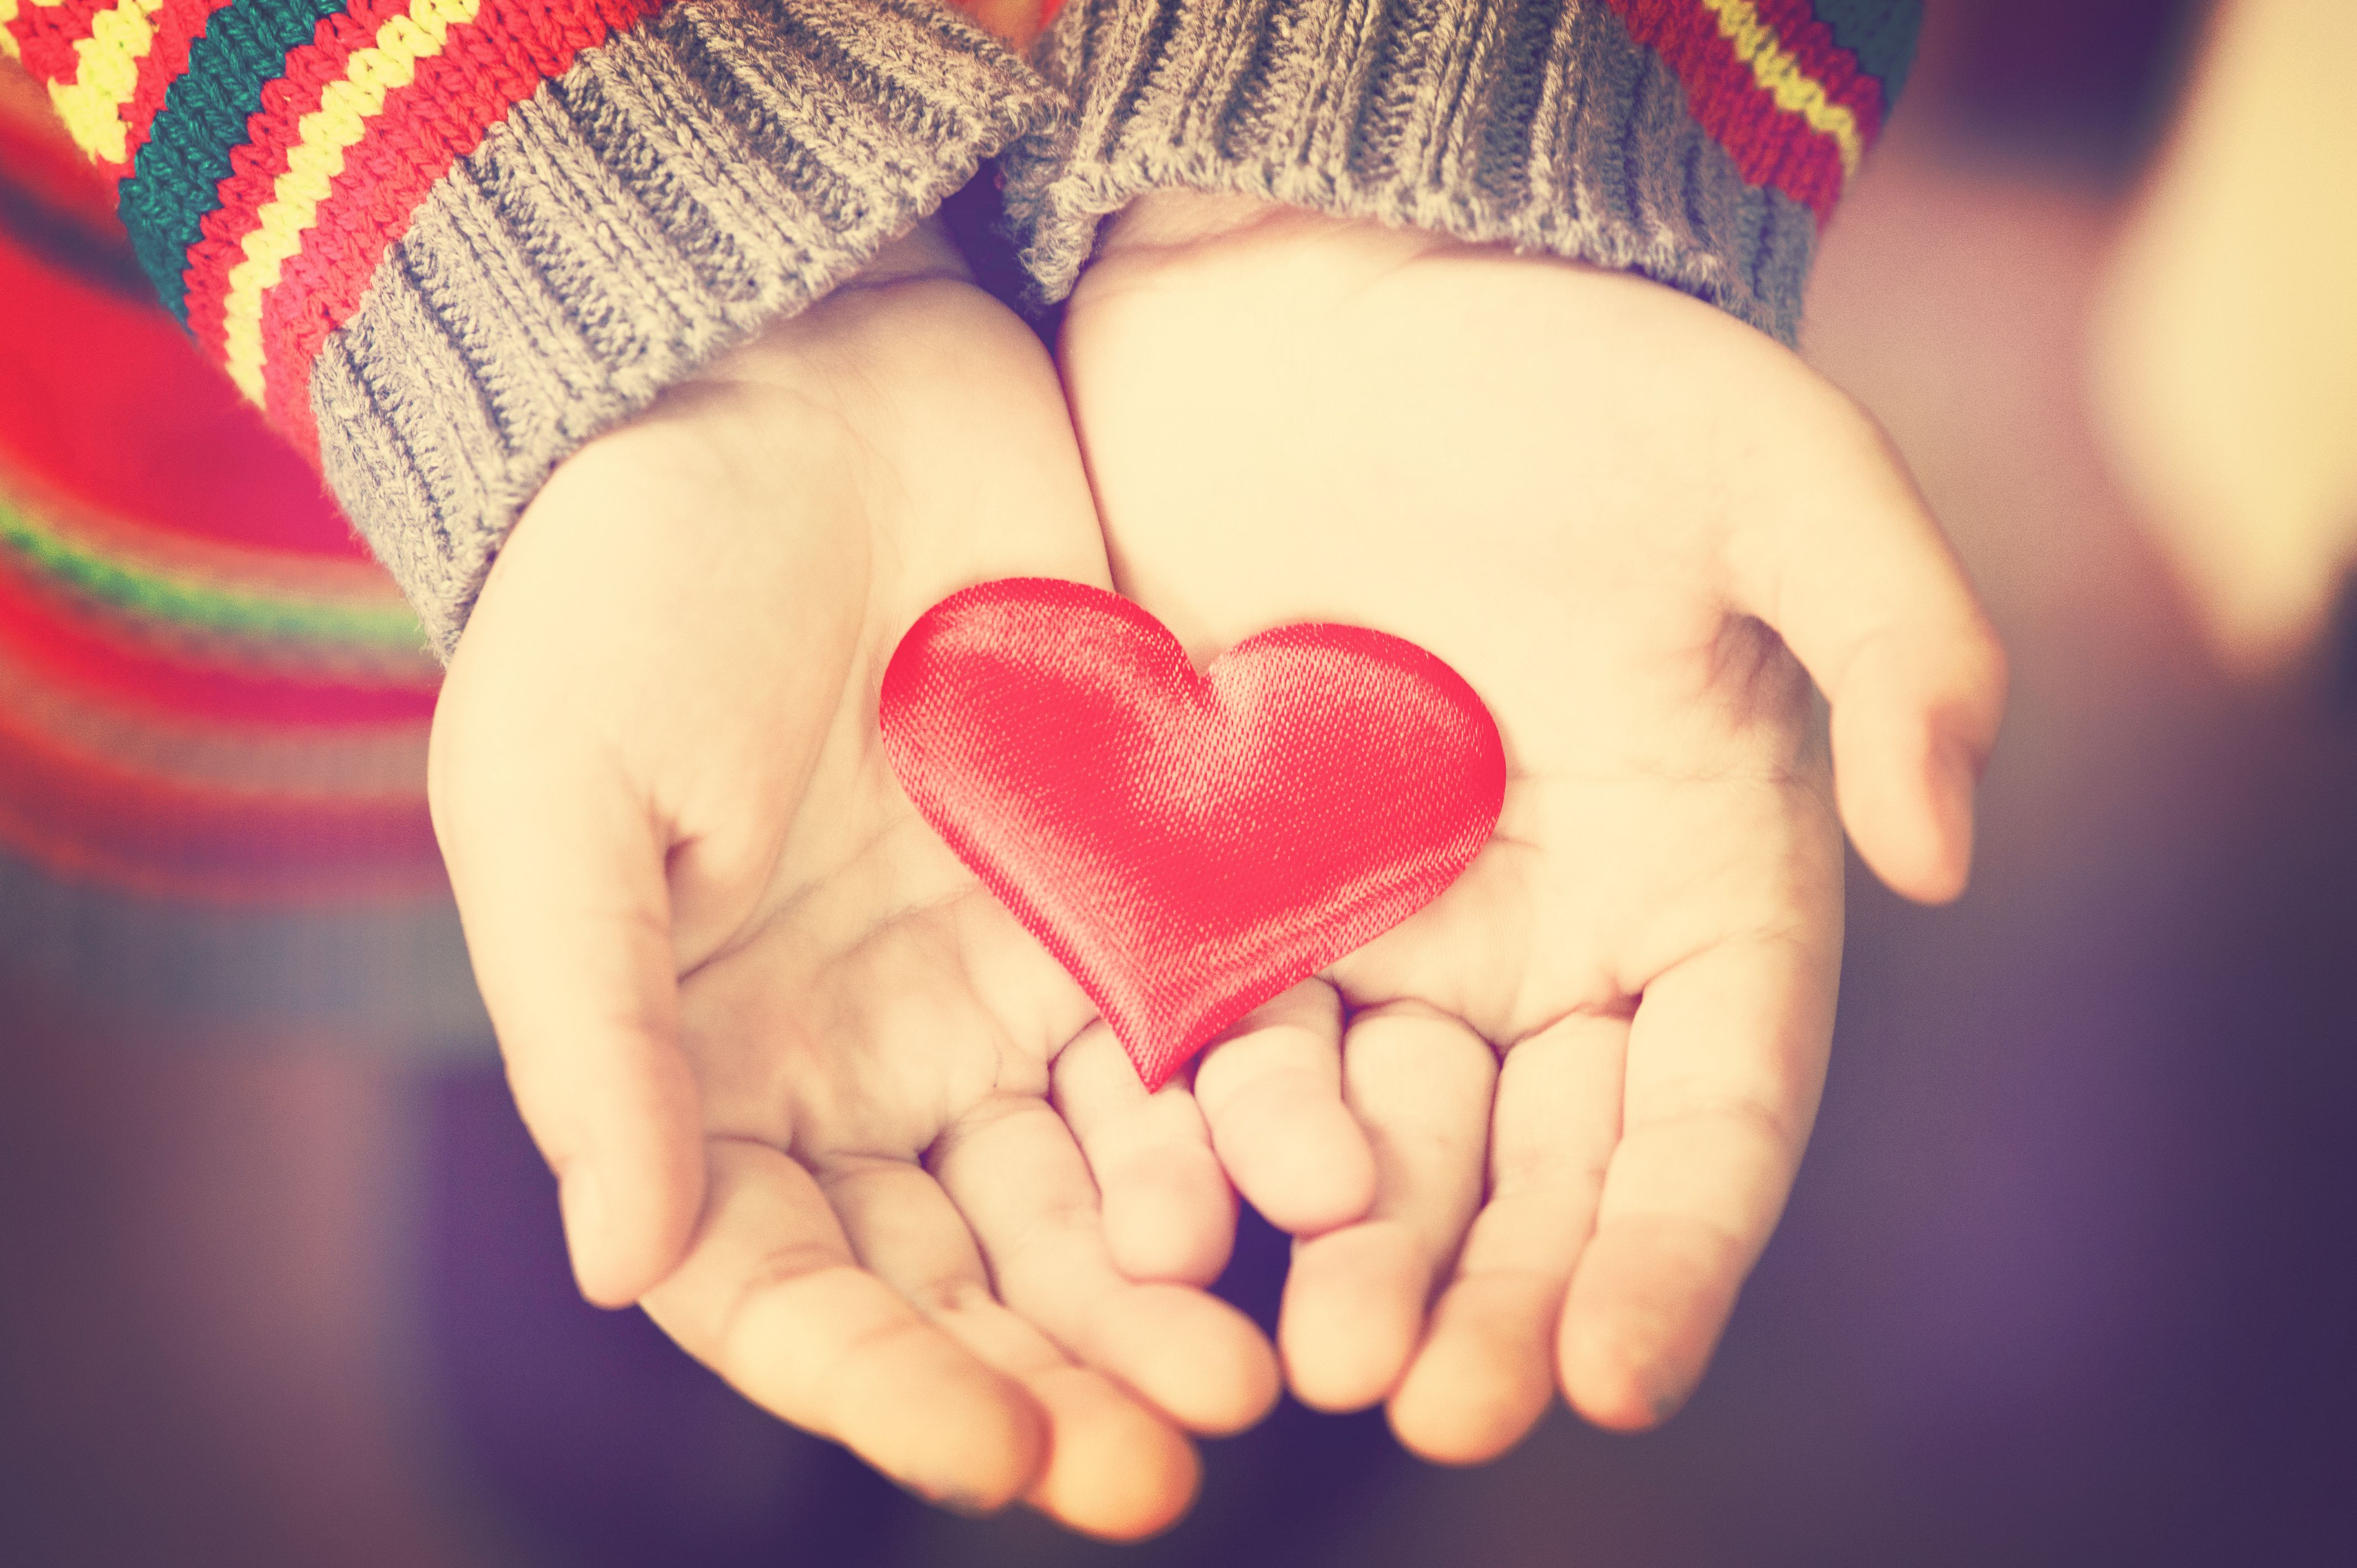 Siky read heart in child's hands